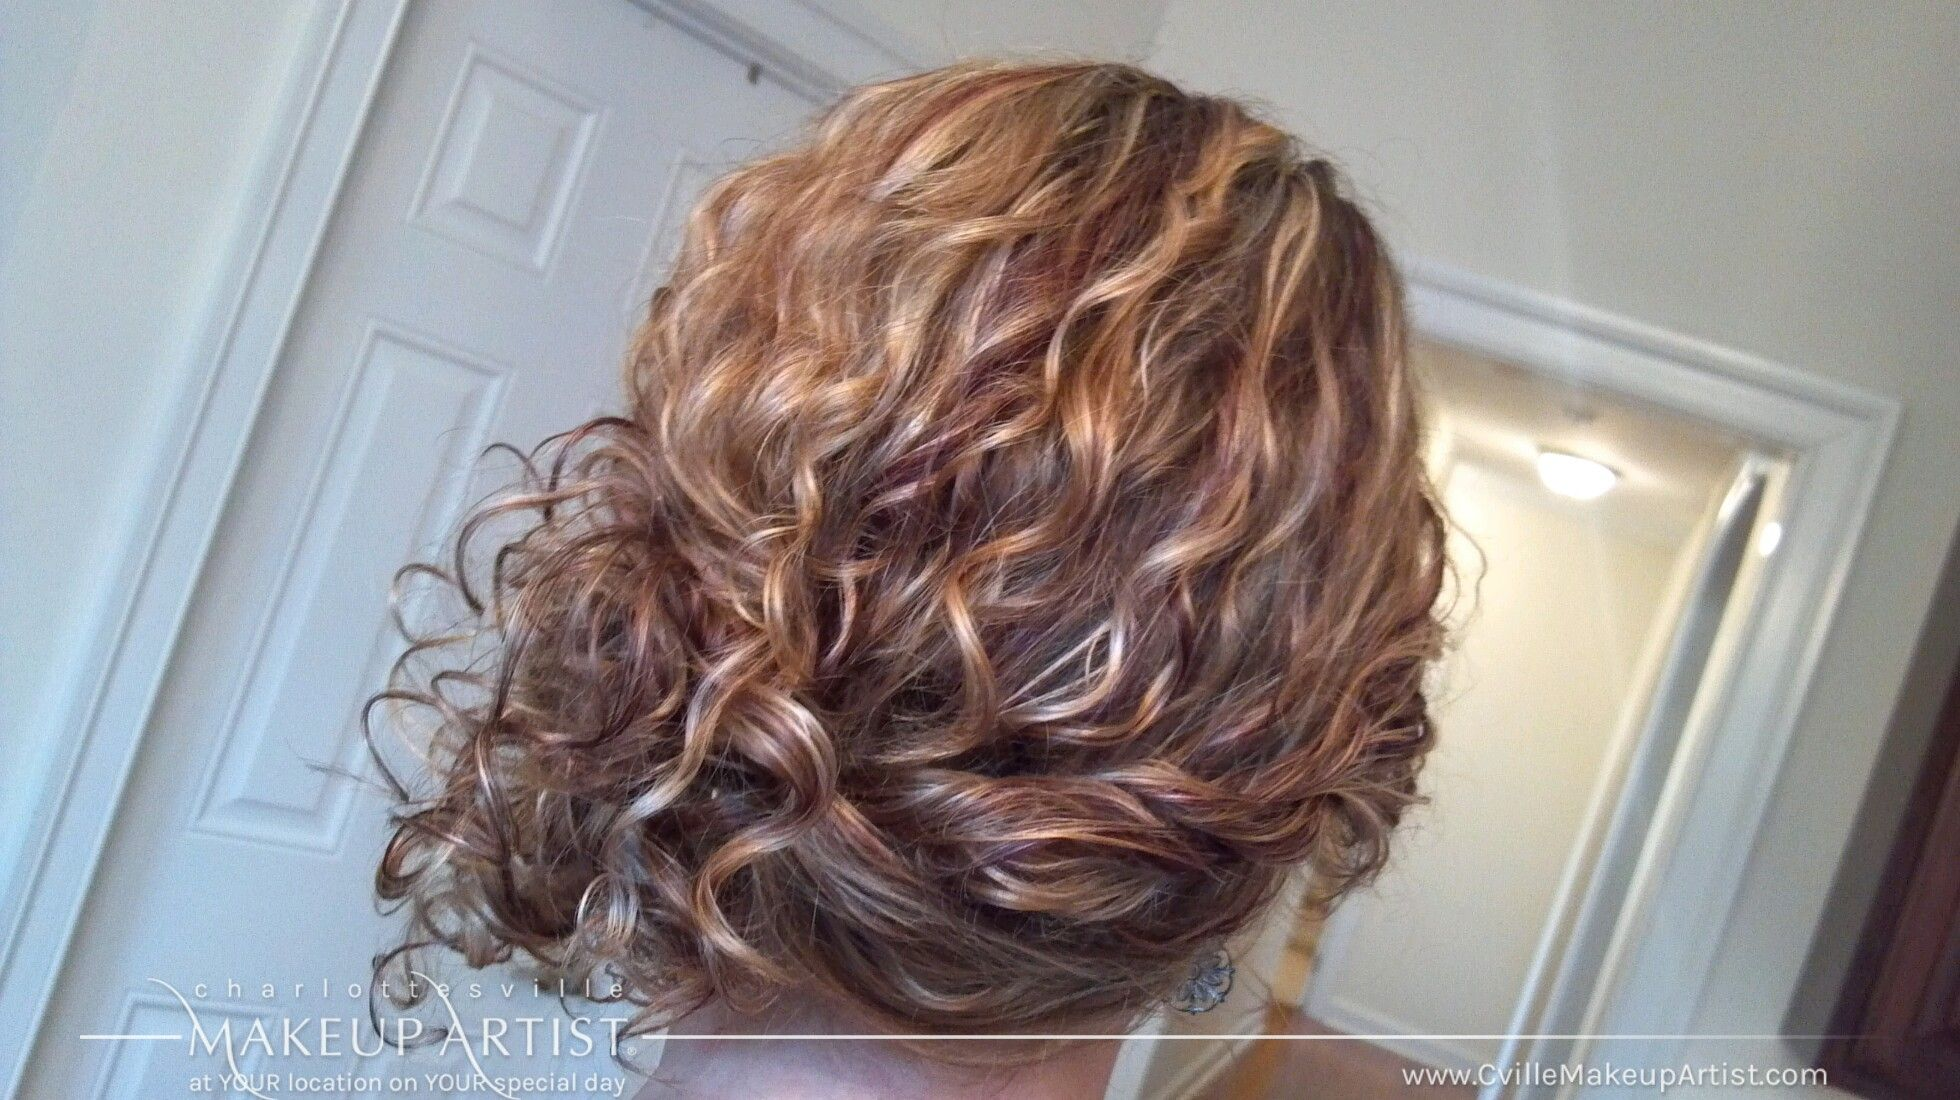 Amazing Blond Updo For Naturally Curly Hair Weddinghair Weddingupdos Updos Curlyhair Looseupdo Curlyhairupdos Hair Wedding Hairstyles Updo Hair Styles